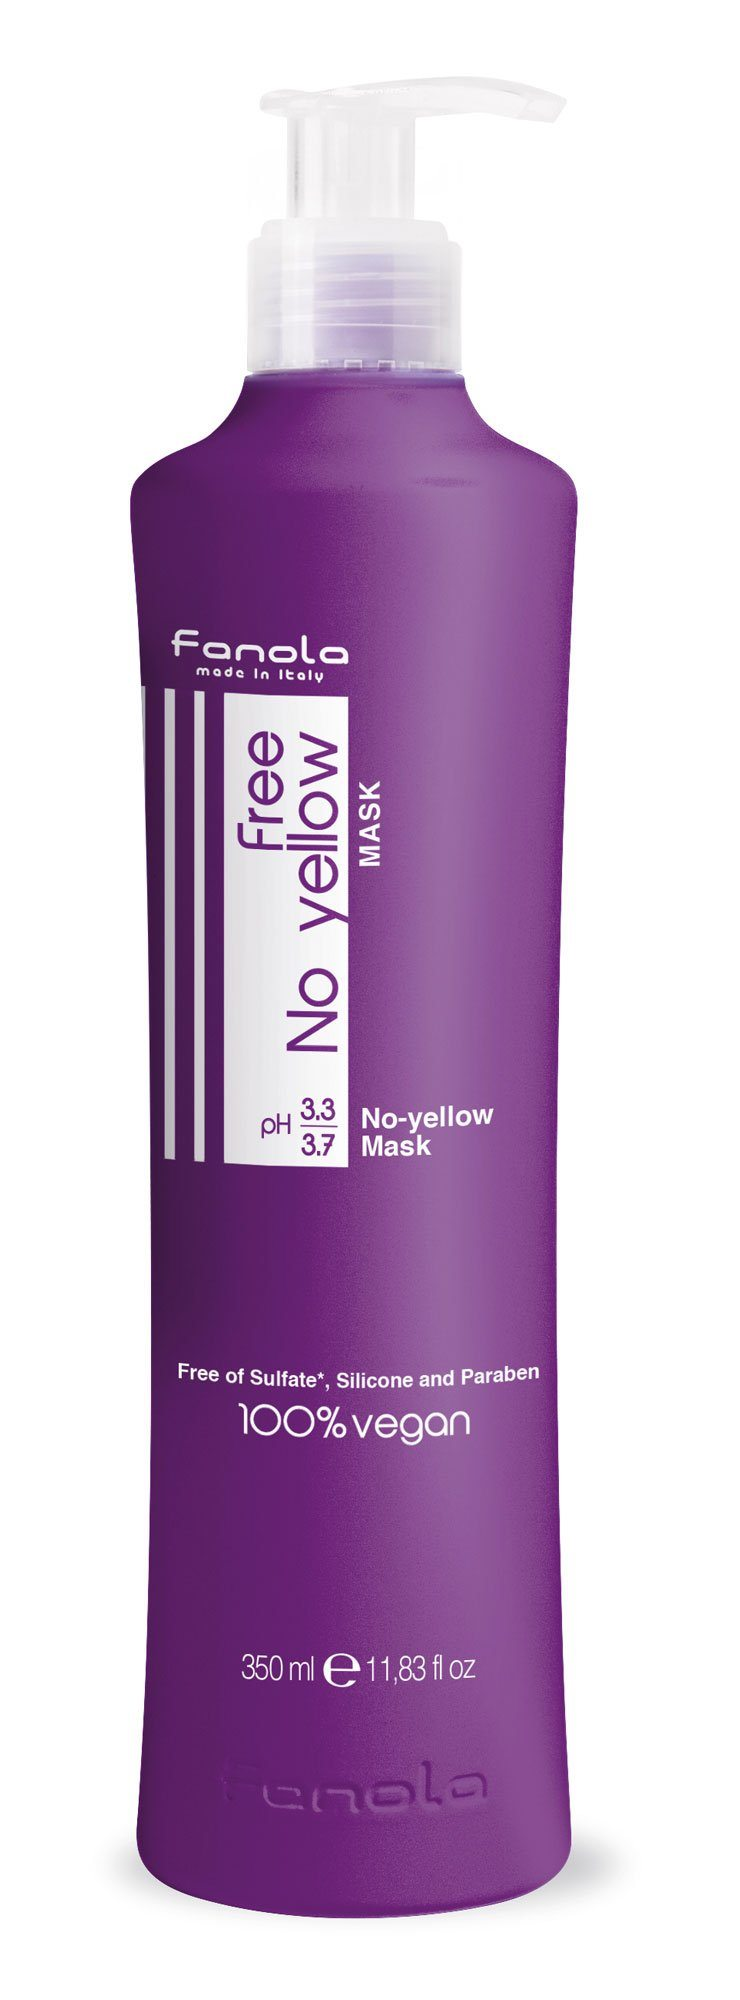 Fanola Free No Yellow Vegan Shampoo or Mask Hair Shampoos Fanola Mask, 350 ml